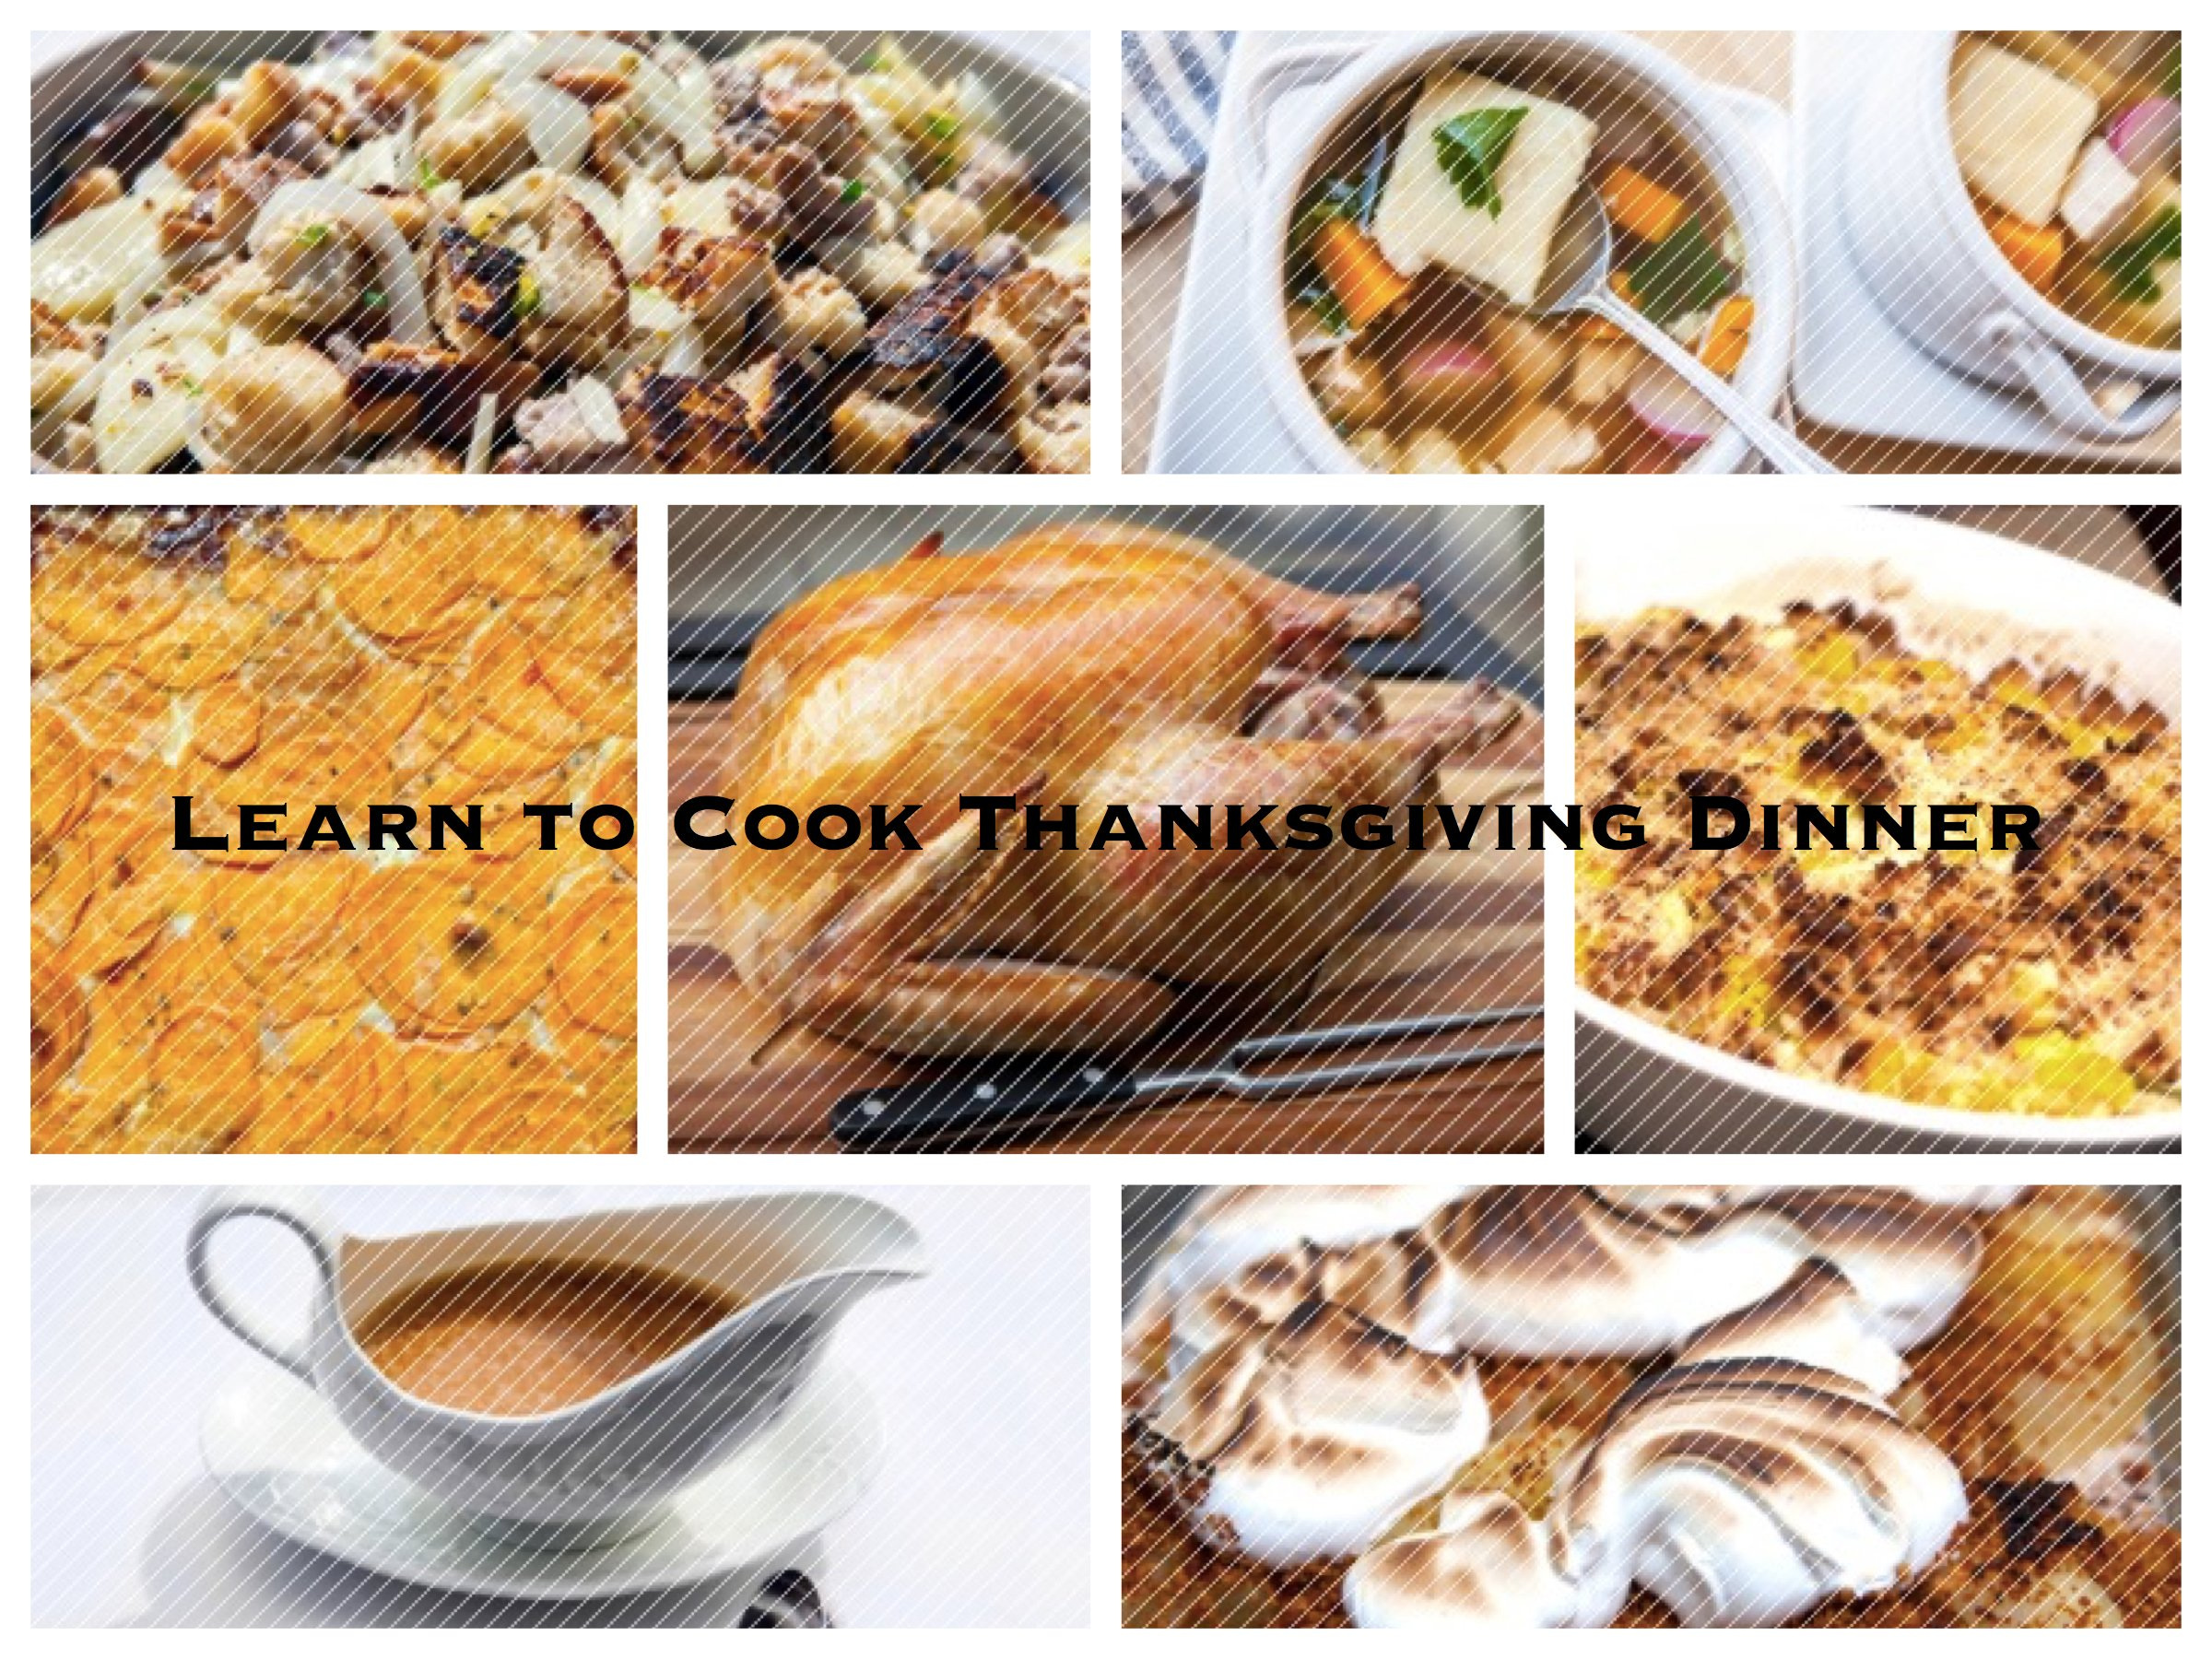 Learn to Cook Thanksgiving Dinner from Michelin-Starred Celebrity Chefs